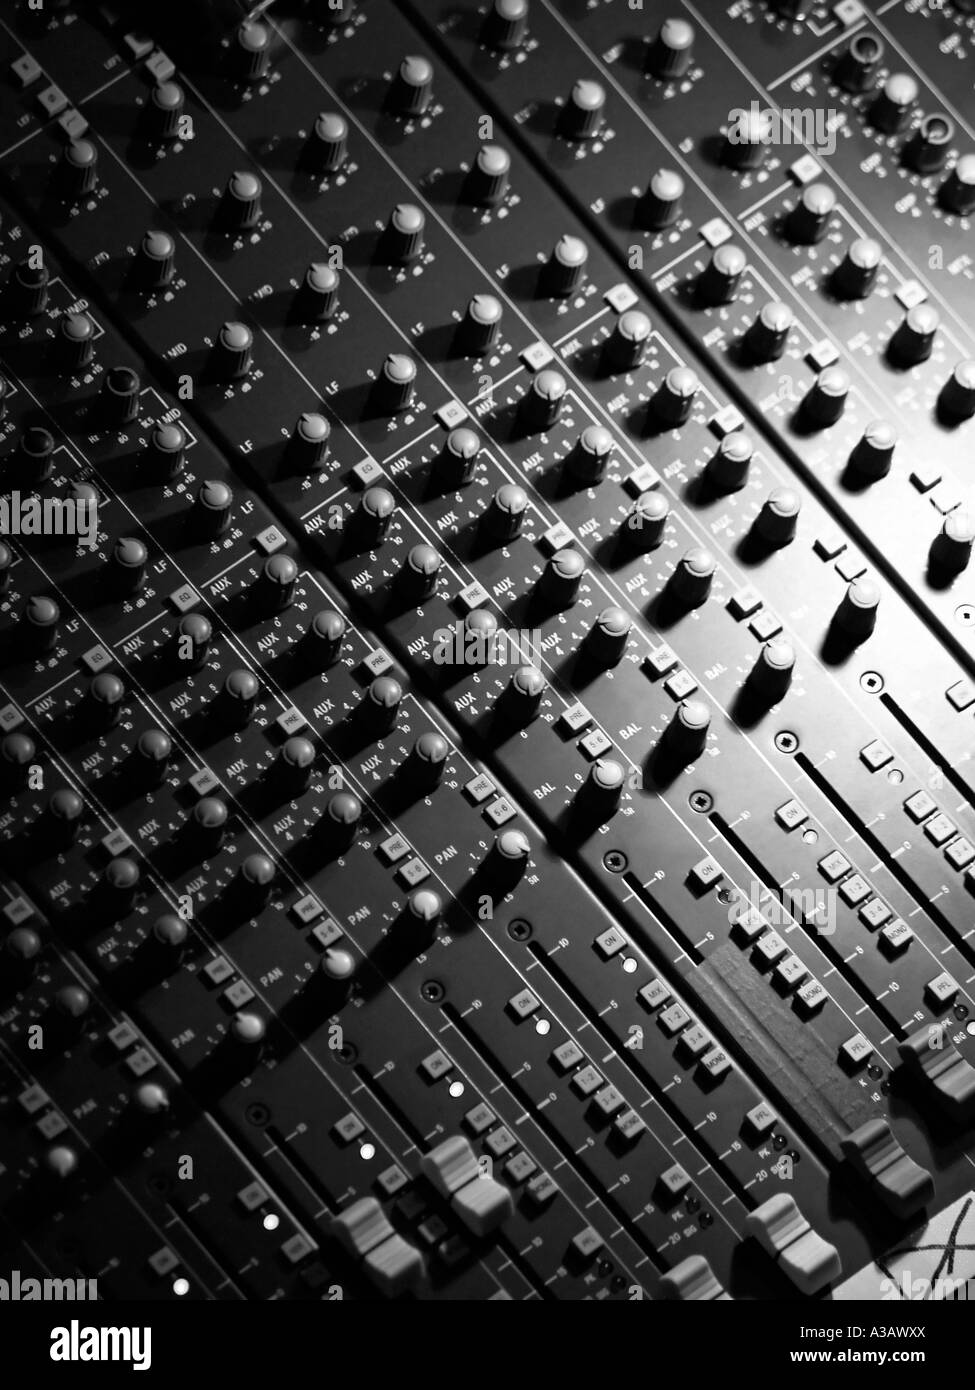 Black and white image of music sound mixing table panel with many knobs buttons switches sliders and other controls - Stock Image